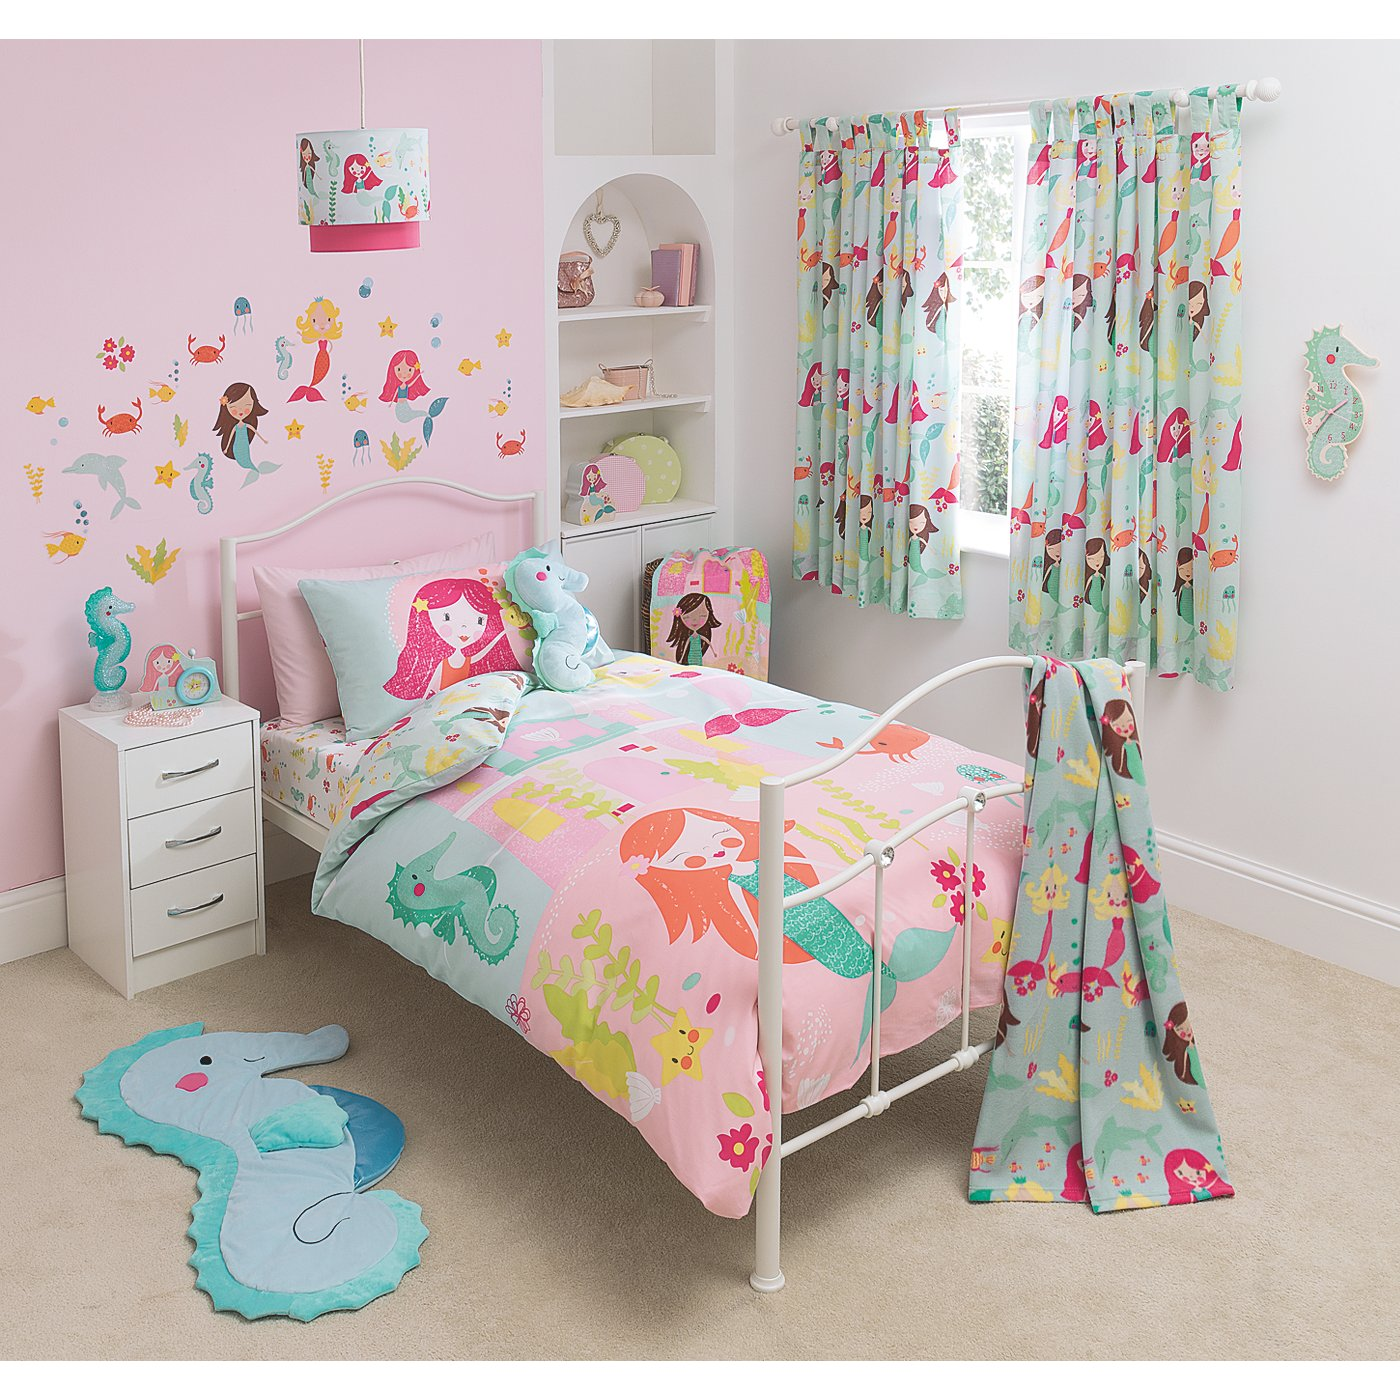 mamasVIB | V. I. BEDROOM: The George Home children's bedroom challenge for under £400| george home children's bedroom challenge | gorgeous room challenge | george home | kids bedrooms | interiors | competition